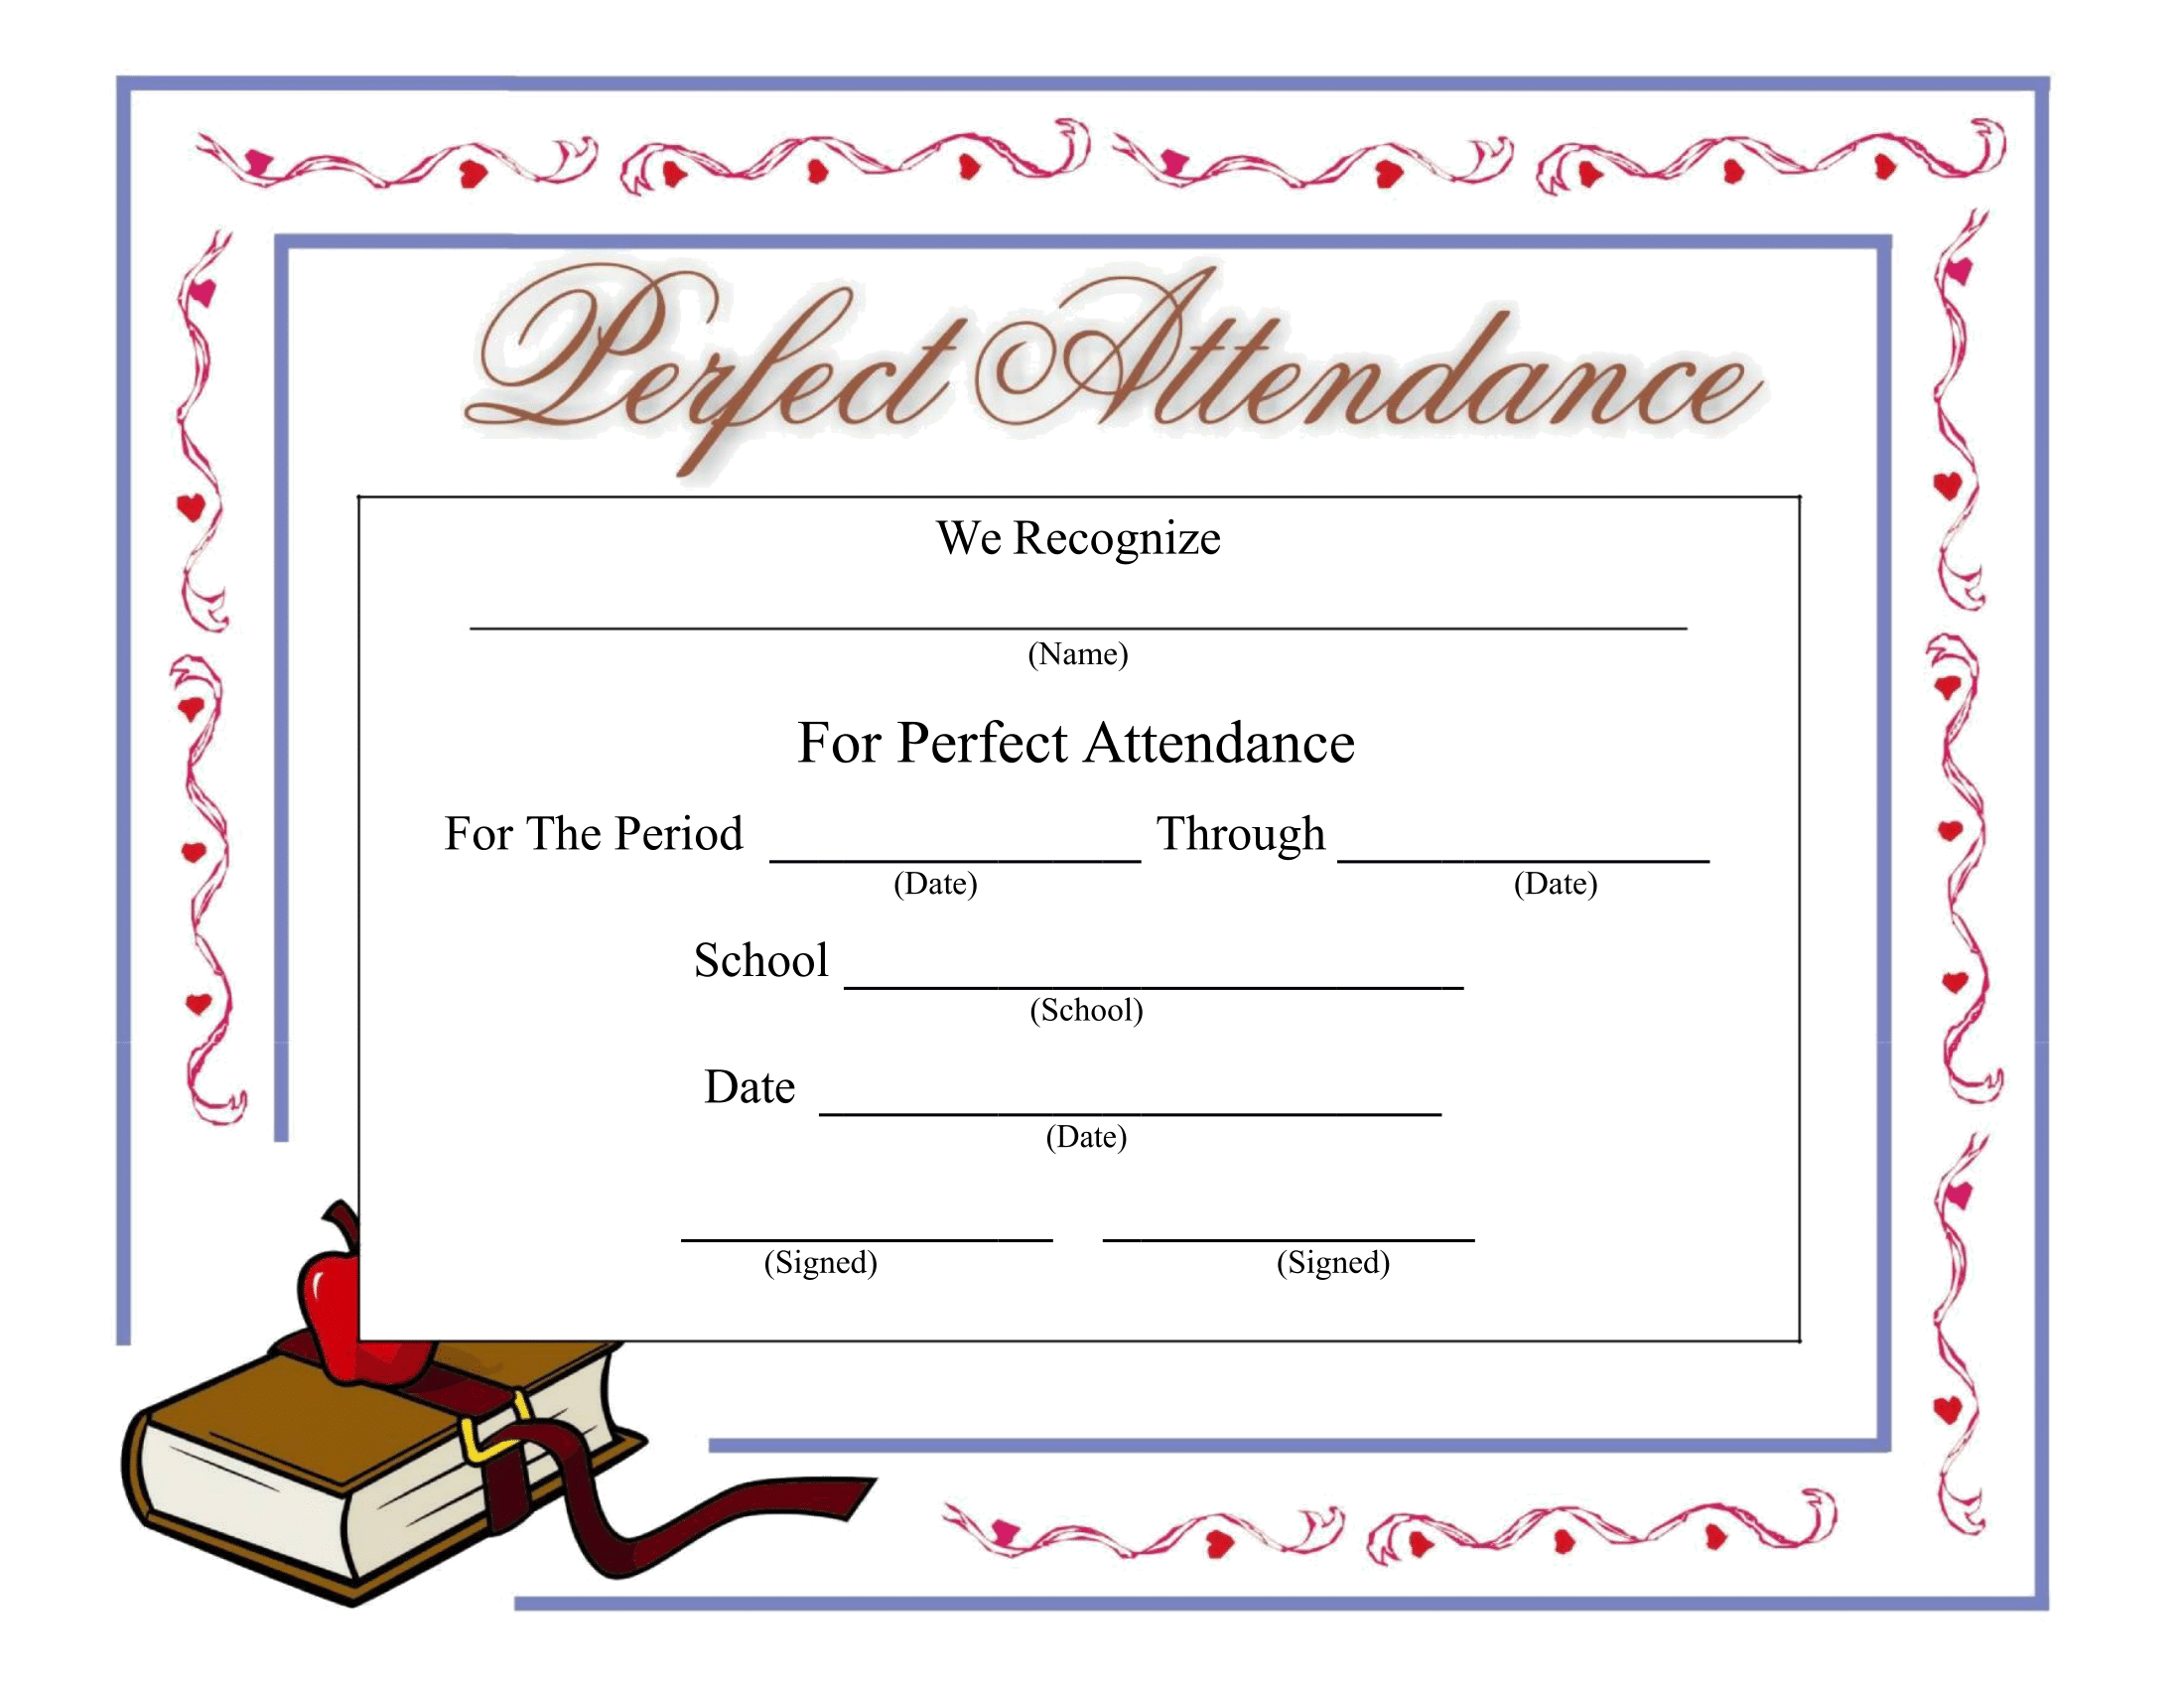 Perfect attendance certificate download a free template perfect attendance certificate download a free template yadclub Images